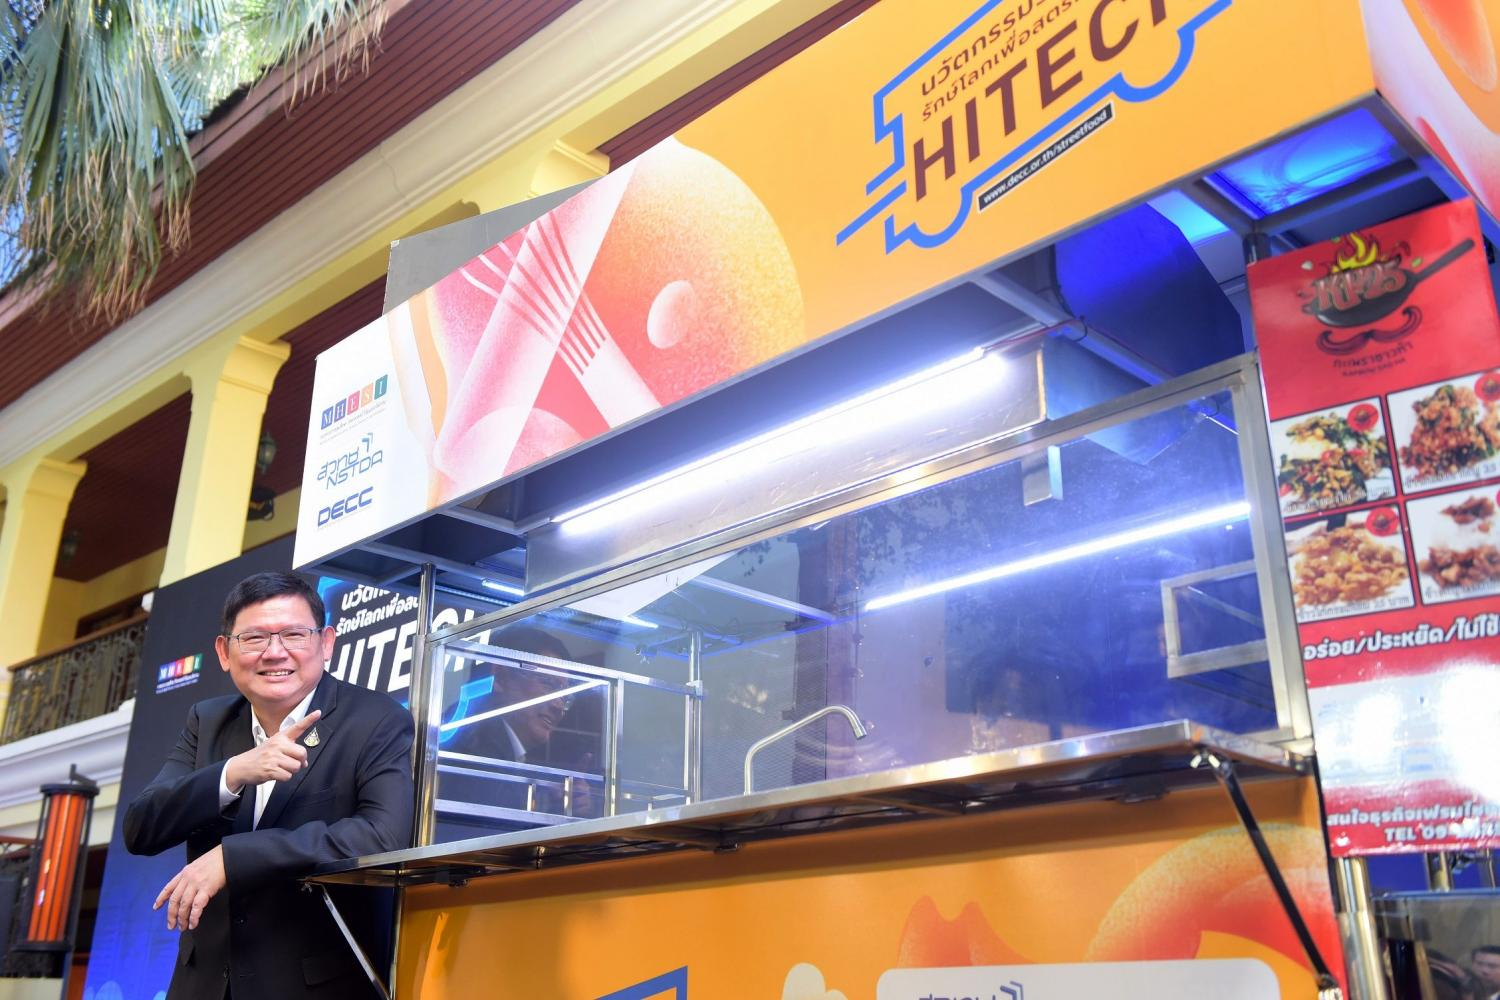 Minister of Higher Education, Science, Research and Innovation Suvit Maesincee demonstrates an environmentally friendly smart food cart developed by Thai inventors. National Science and Technology Development Agency